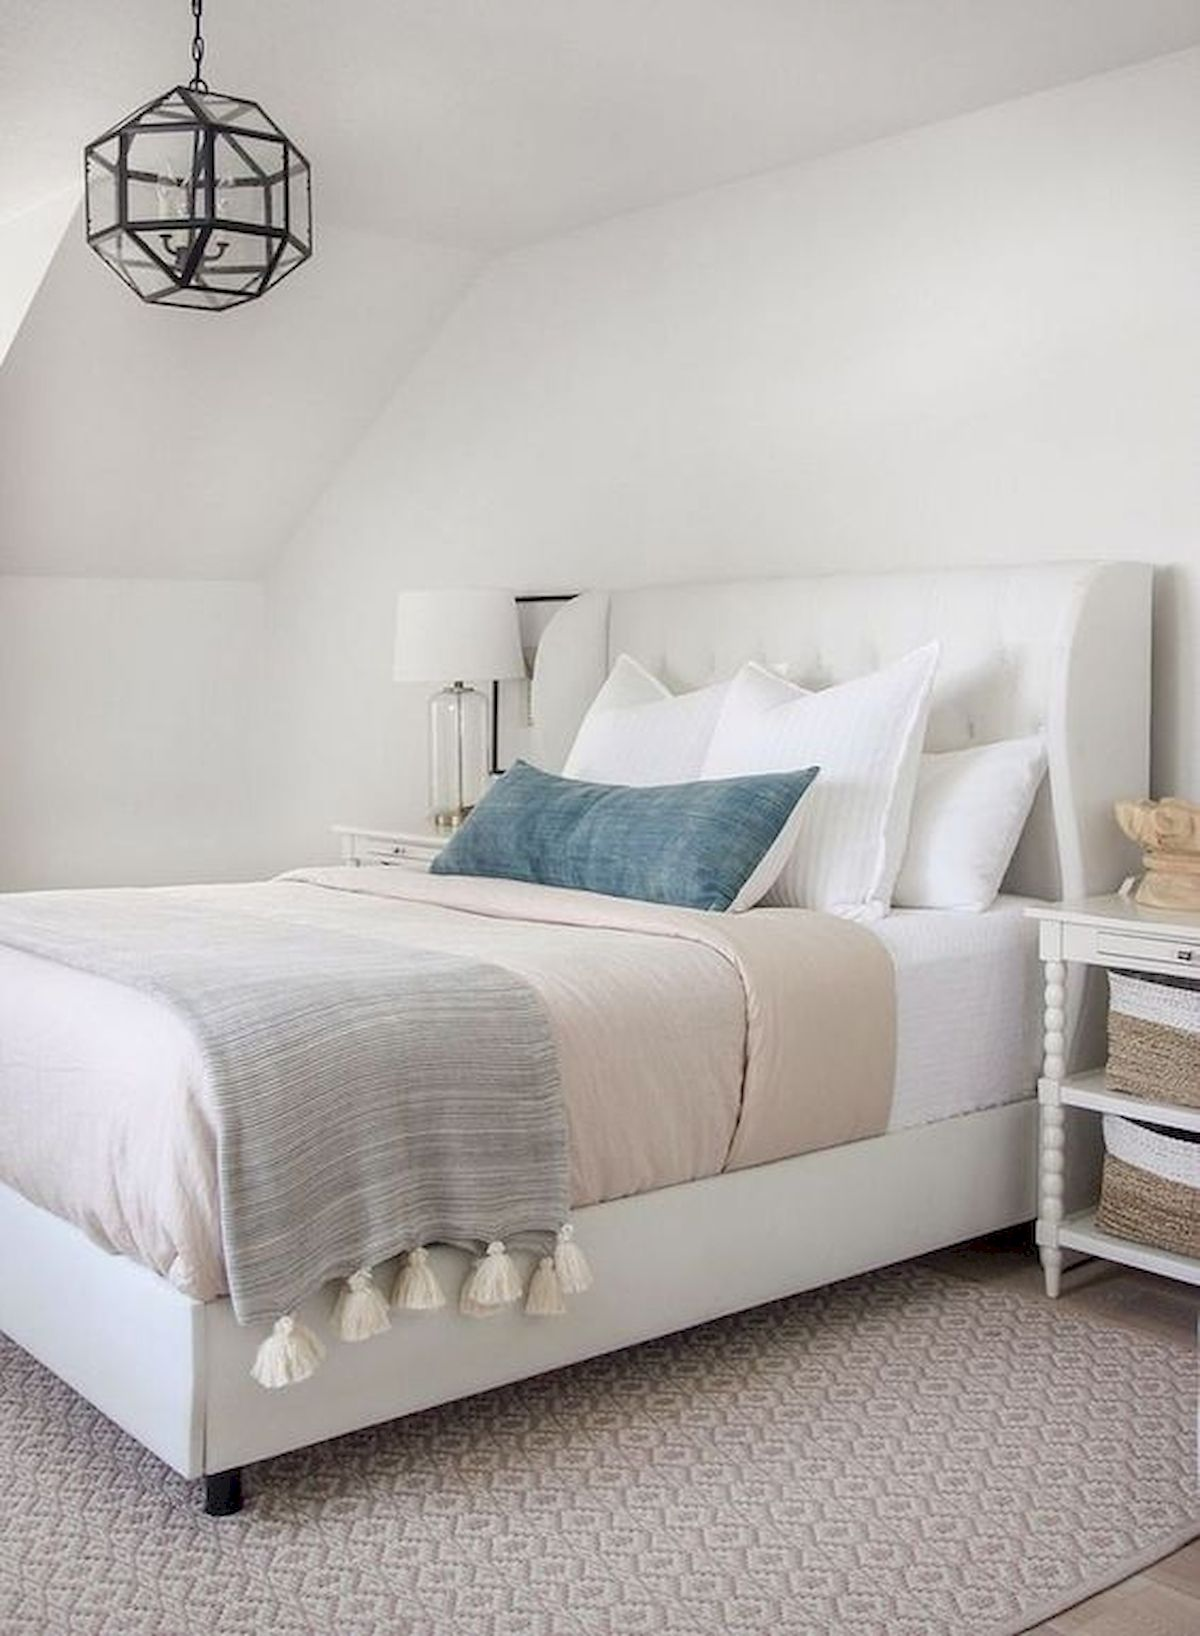 44 Awesome White Master Bedroom Design and Decor Ideas For Any Home Design (19)